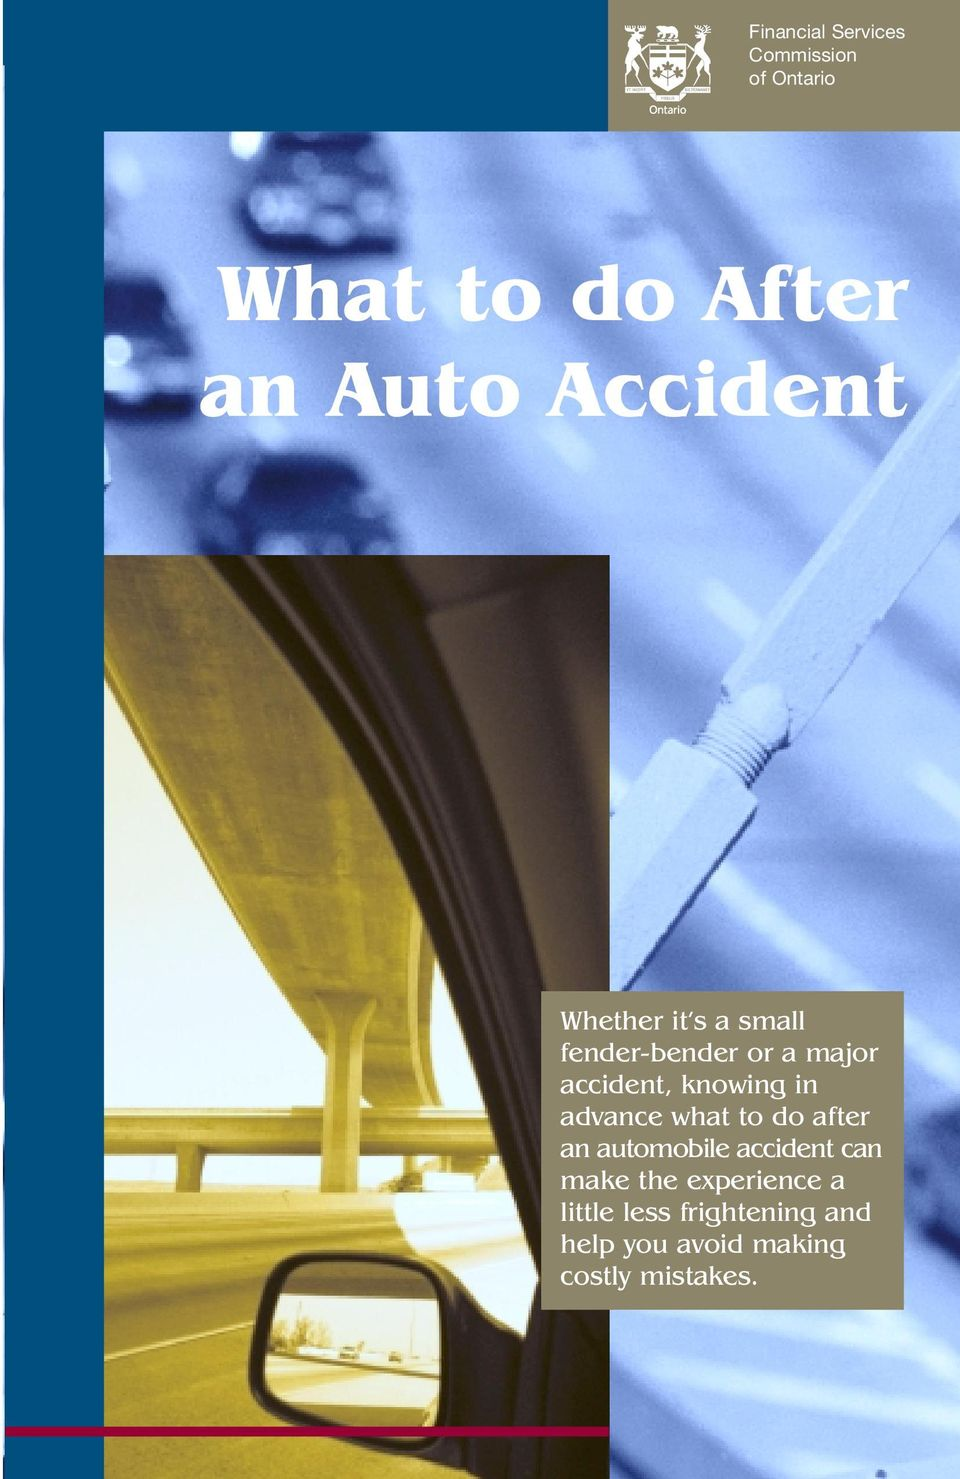 knowing in advance what to do after an automobile accident can make